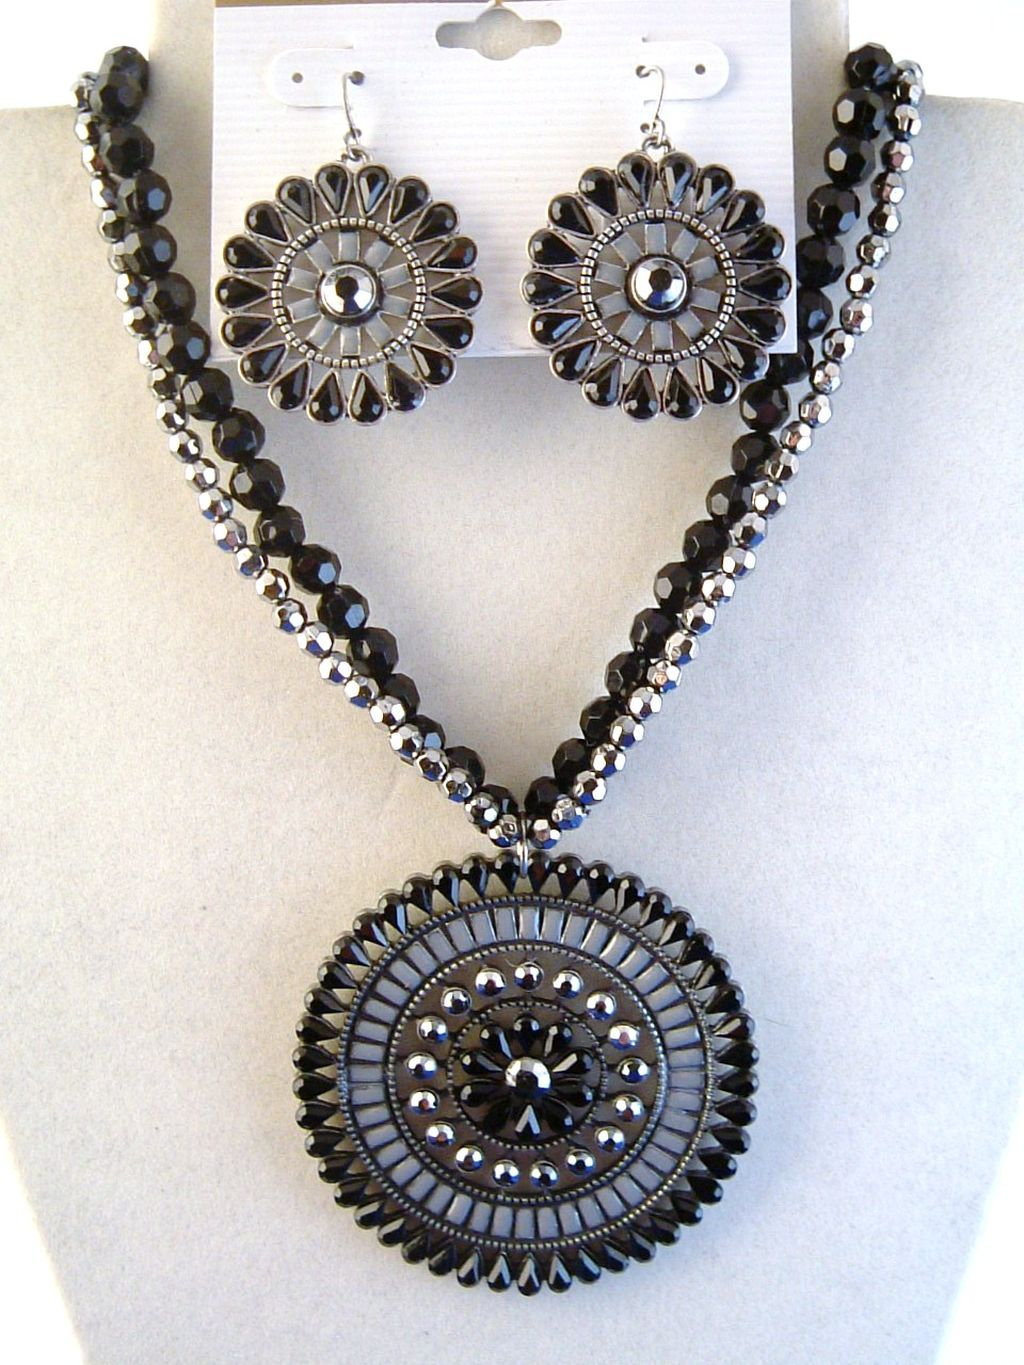 Black Diamond Flower Pendant Necklace Earrings Jewelry Set